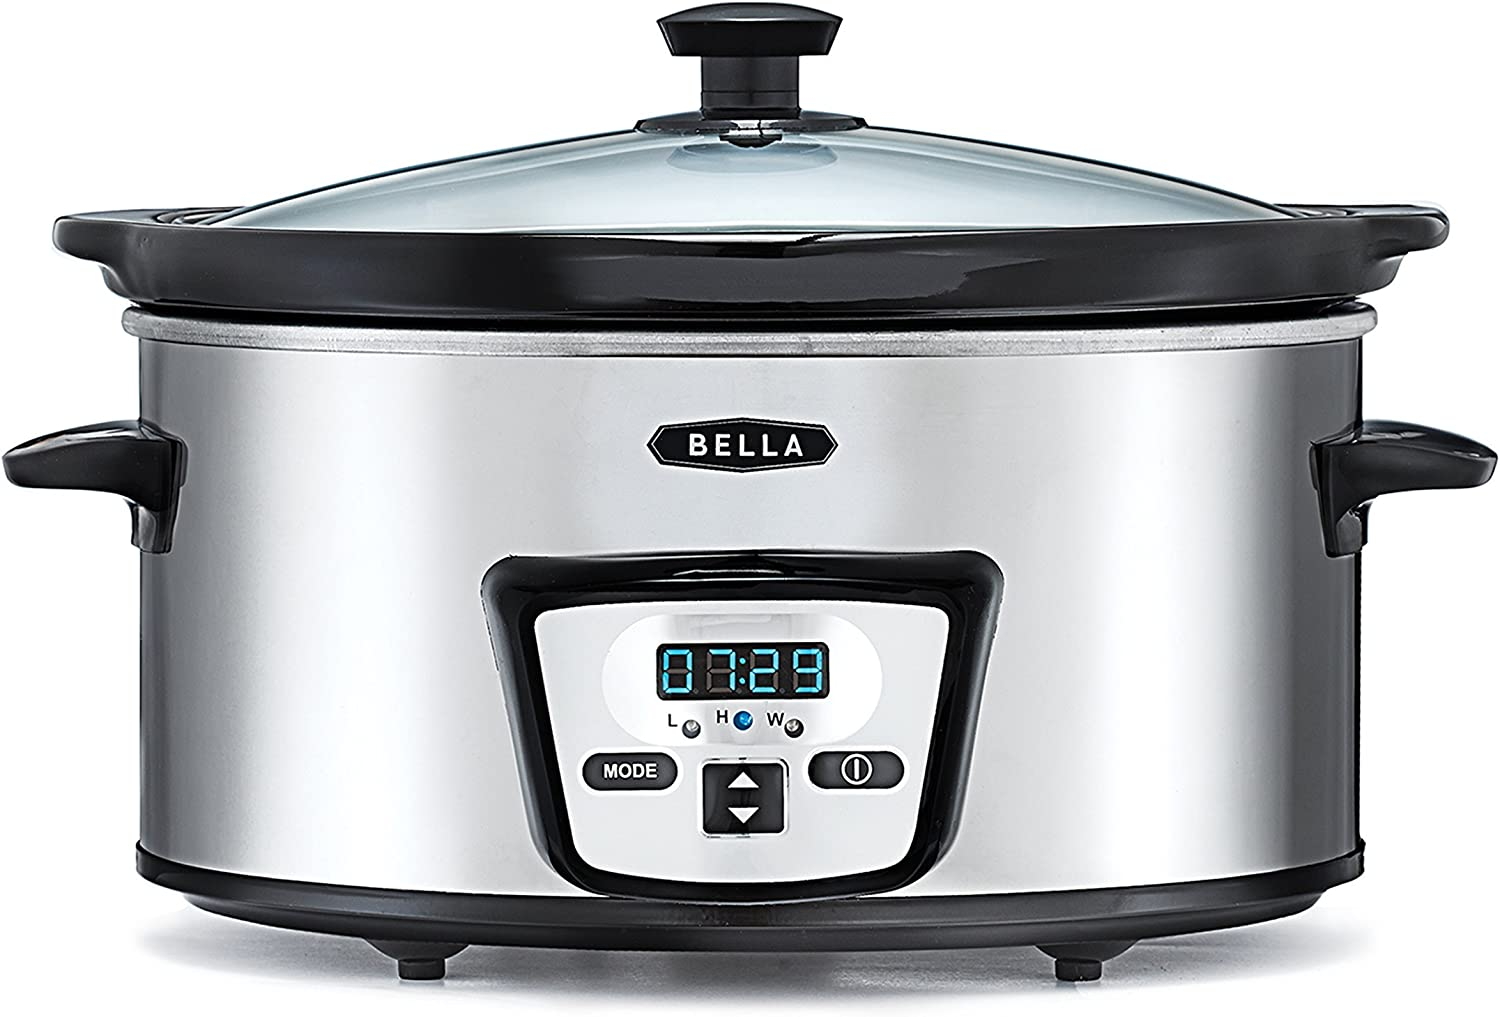 BELLA 13973 5 Quart Programmable Slow Cooker, Polished Stainless Steel